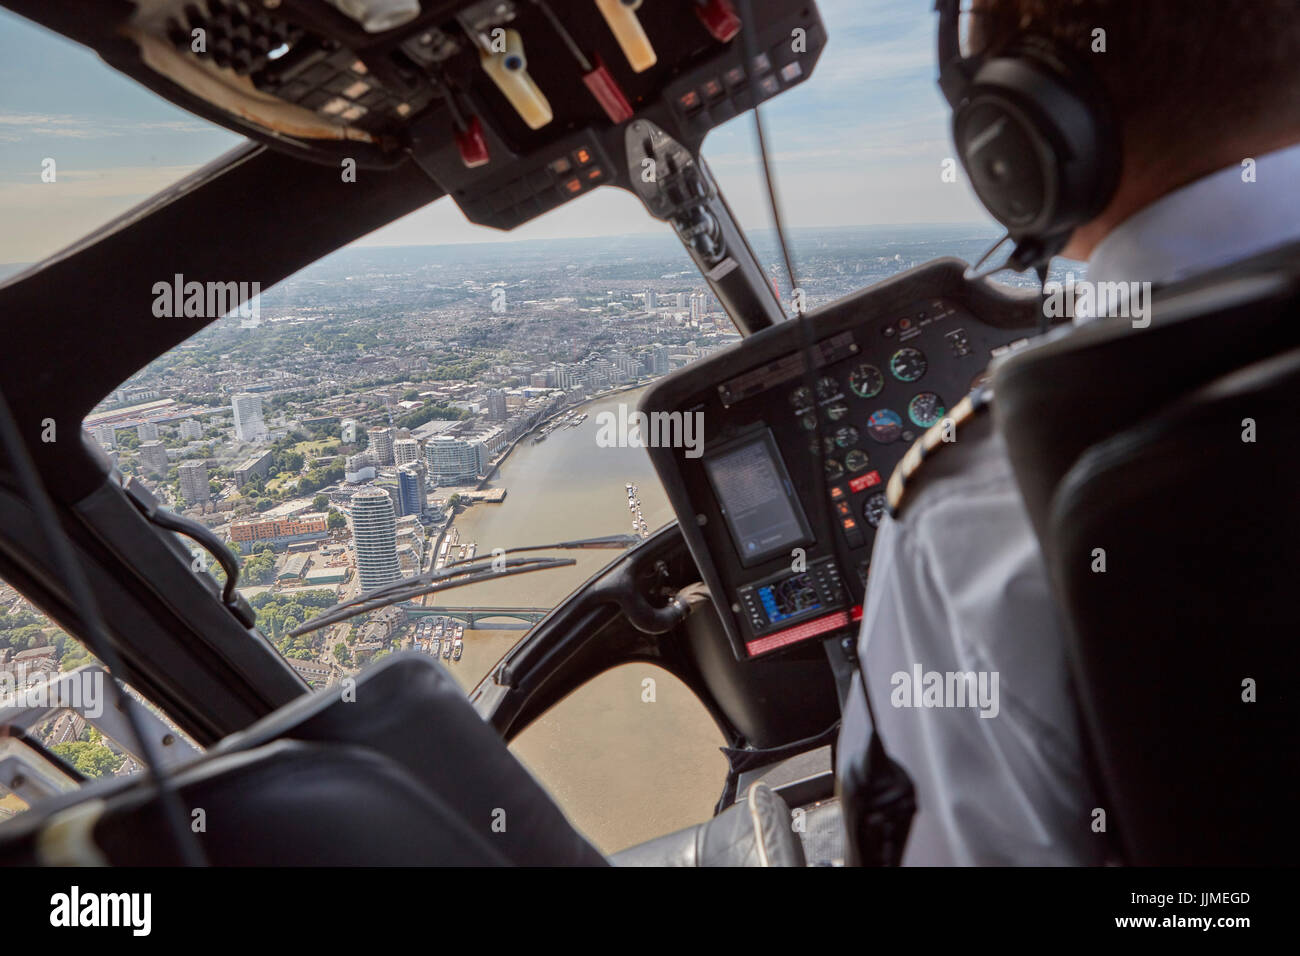 A photographer's eye view of an aerial photography flight over London Stock Photo